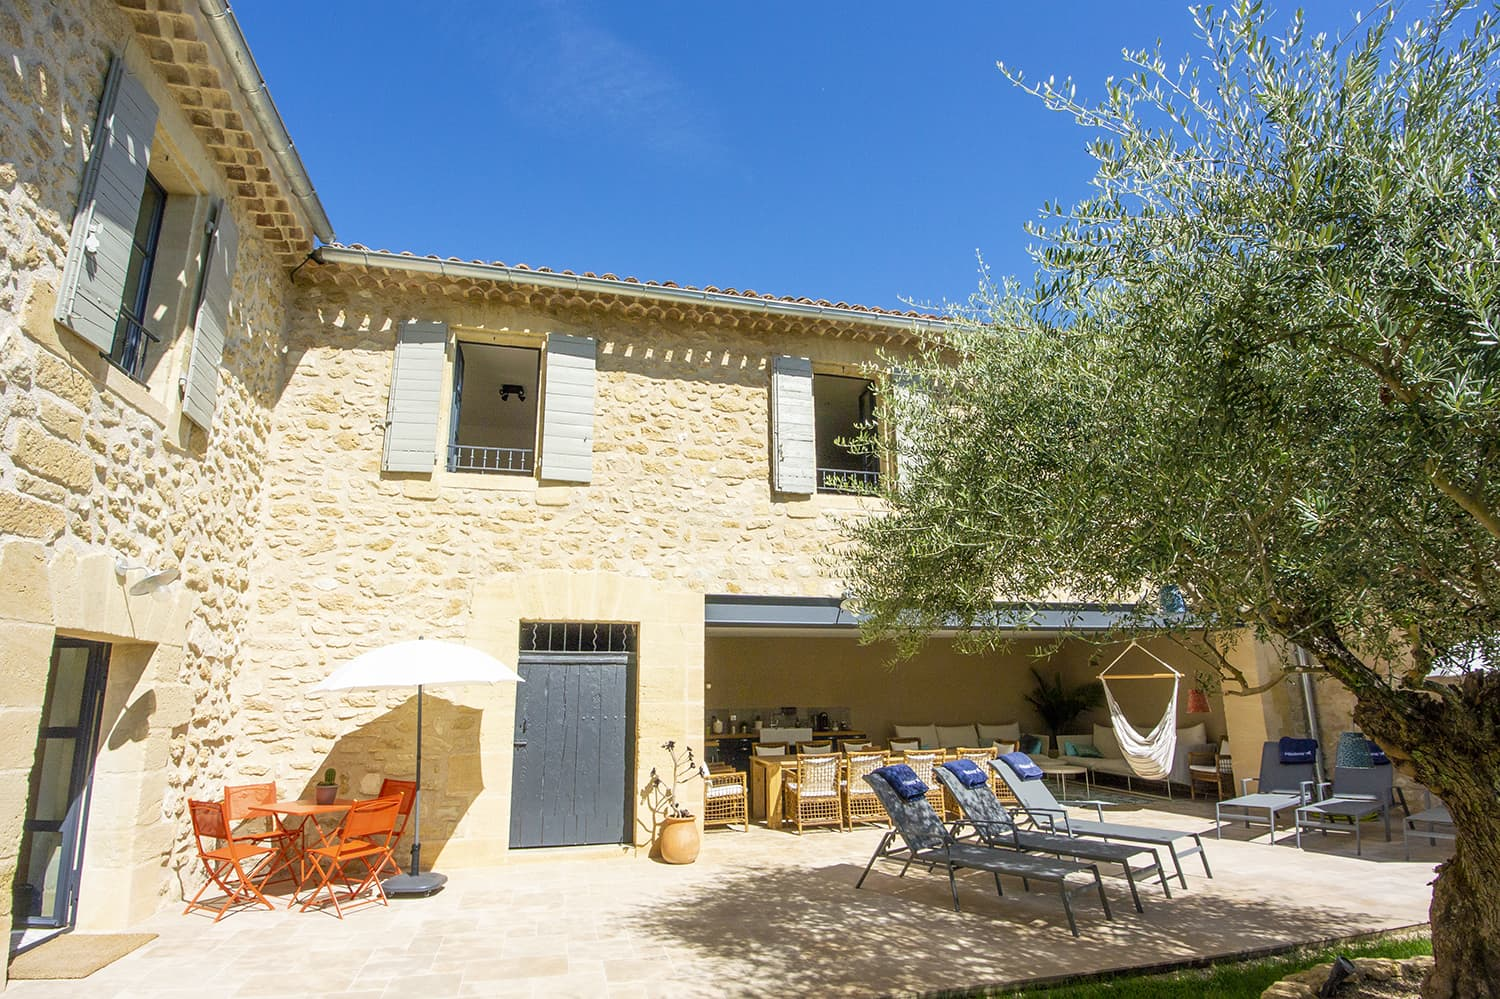 Holiday home in Cadenet, Provence-Alpes-Côte d'Azur